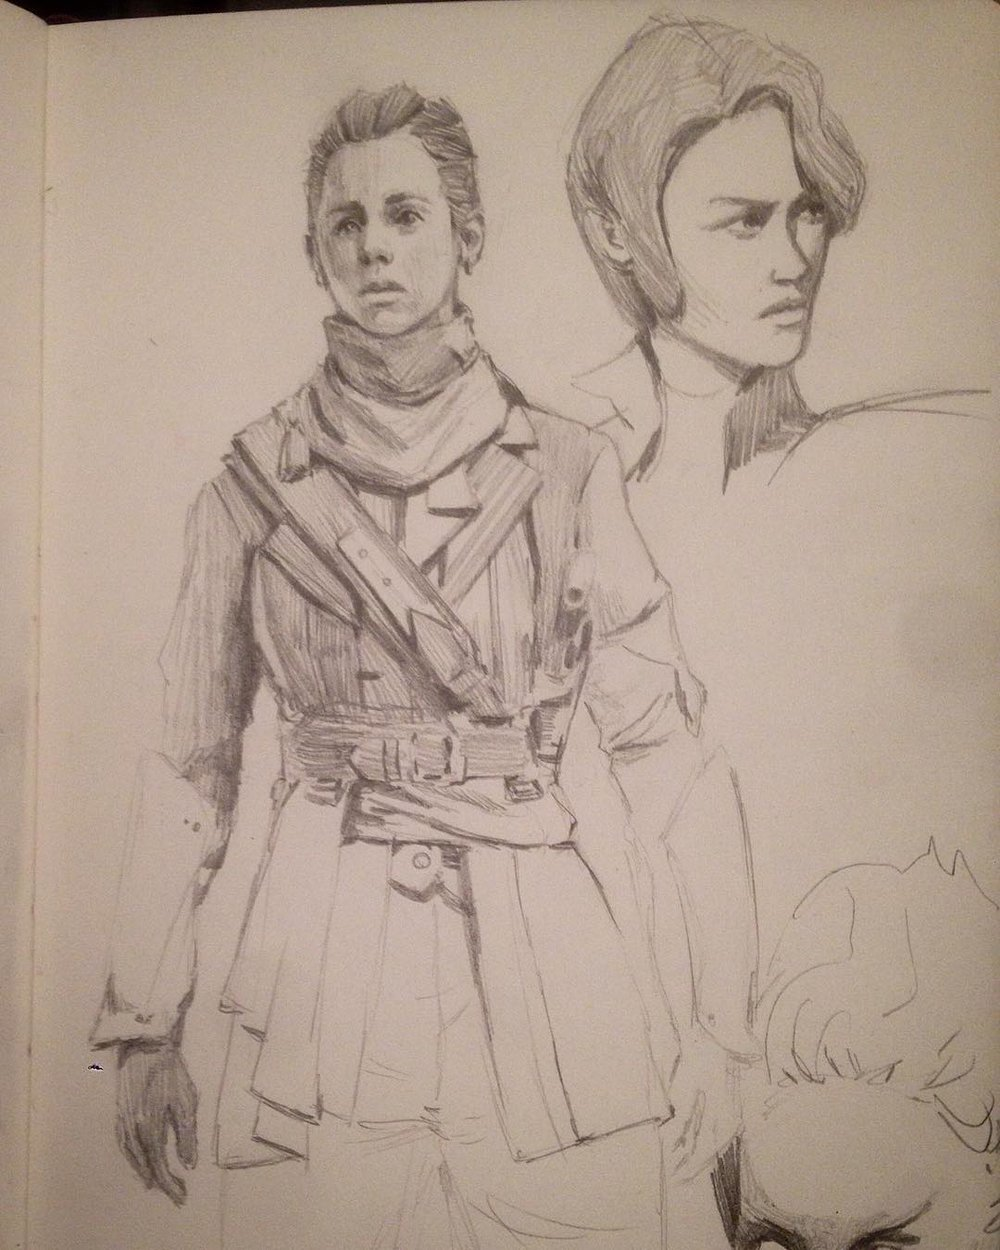 Warm up, #sculptstudy #order1886 and one other #figure #facestudy #asketchaday #molskine #sketchbook #pencildrawing